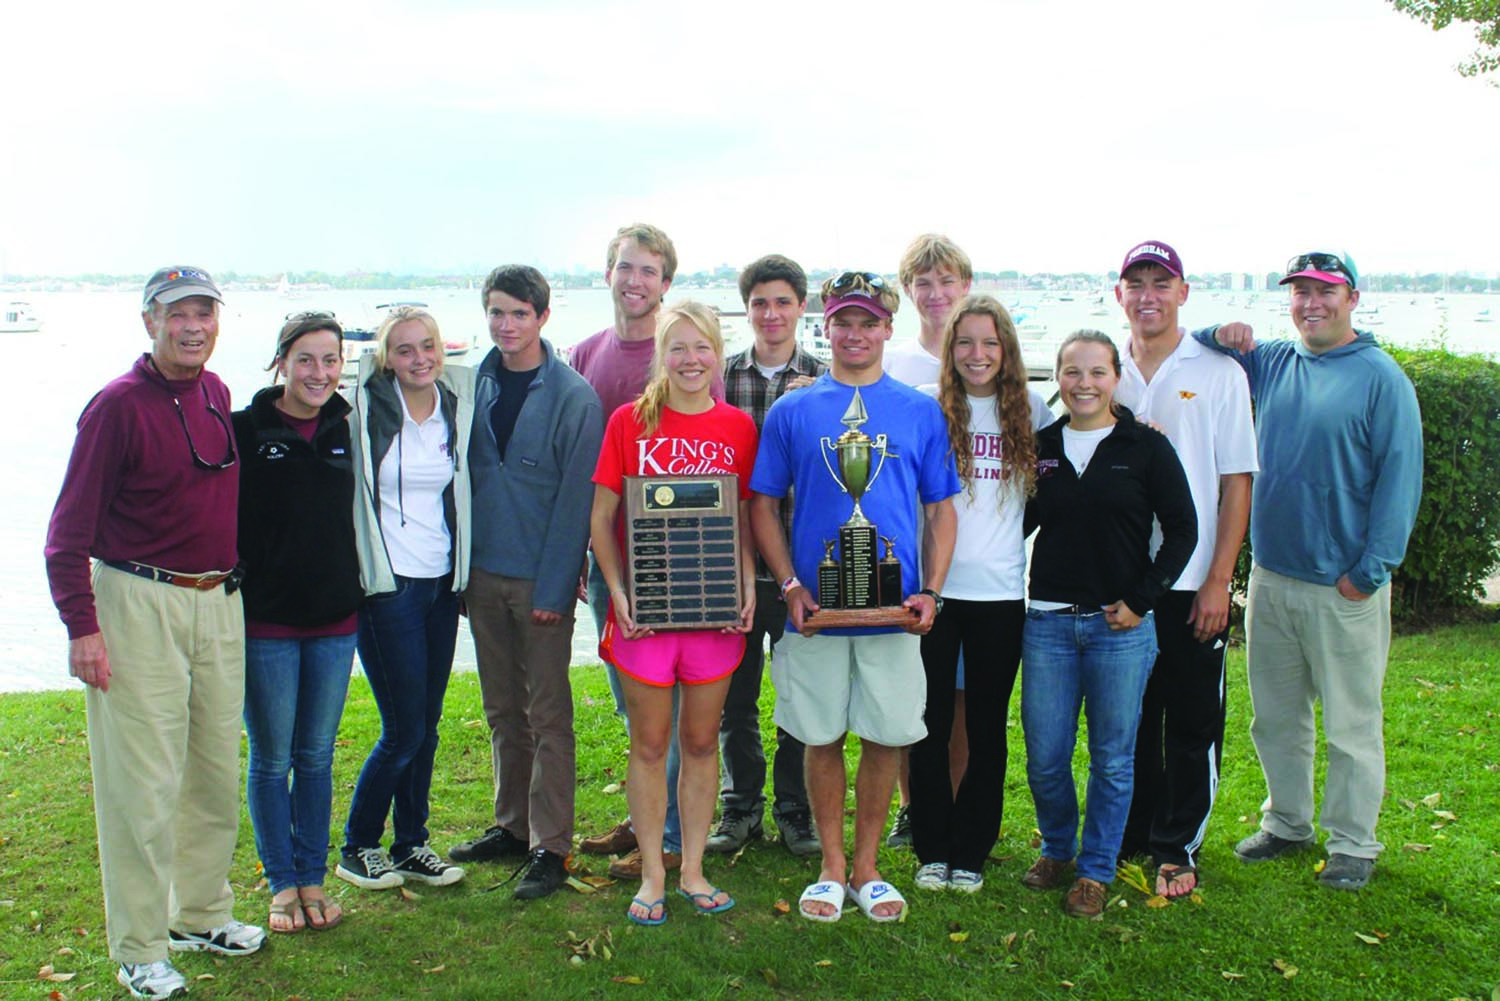 The Fordham sailing team has gone from competitive to formidable, knocking off top-ten teams as of late and winning the Jesuit Open, seen here. (Courtesy of the Sailing Team)